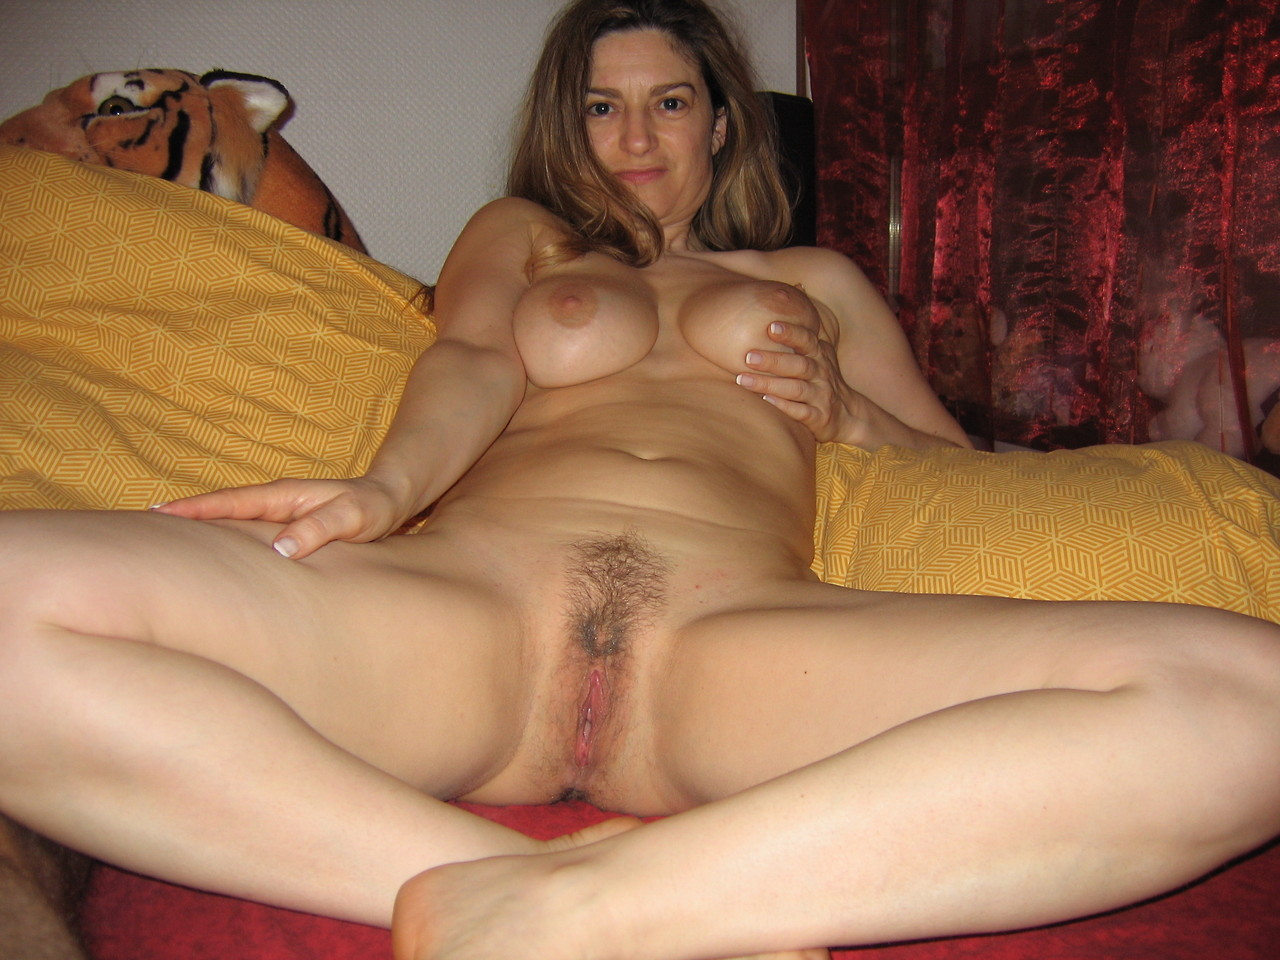 Young nude pussy pics